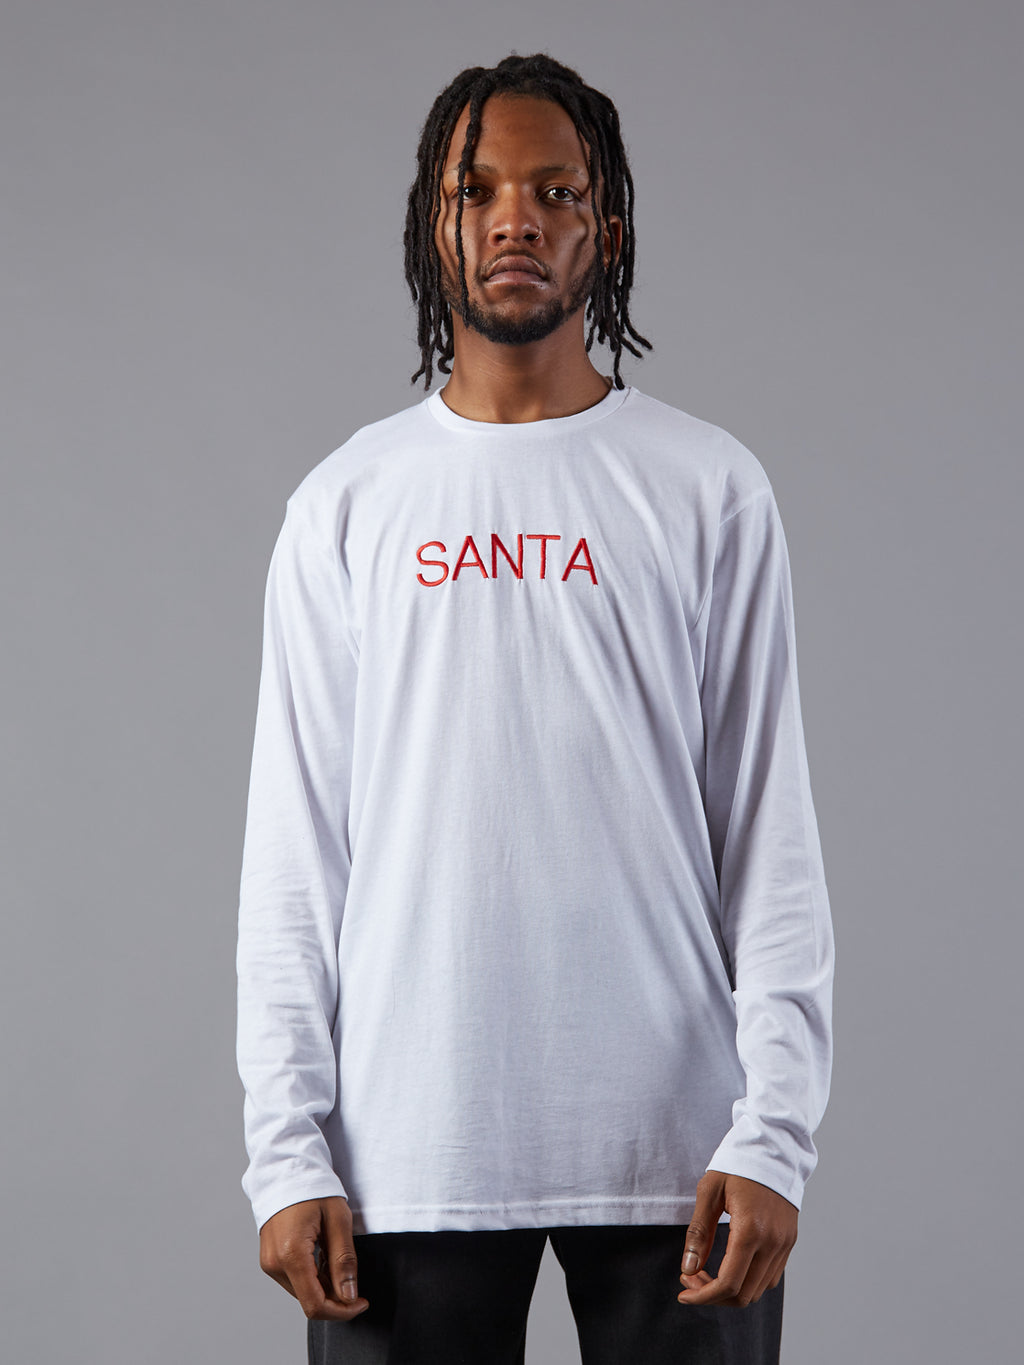 CustomRare SANTA Long Sleeve Tee